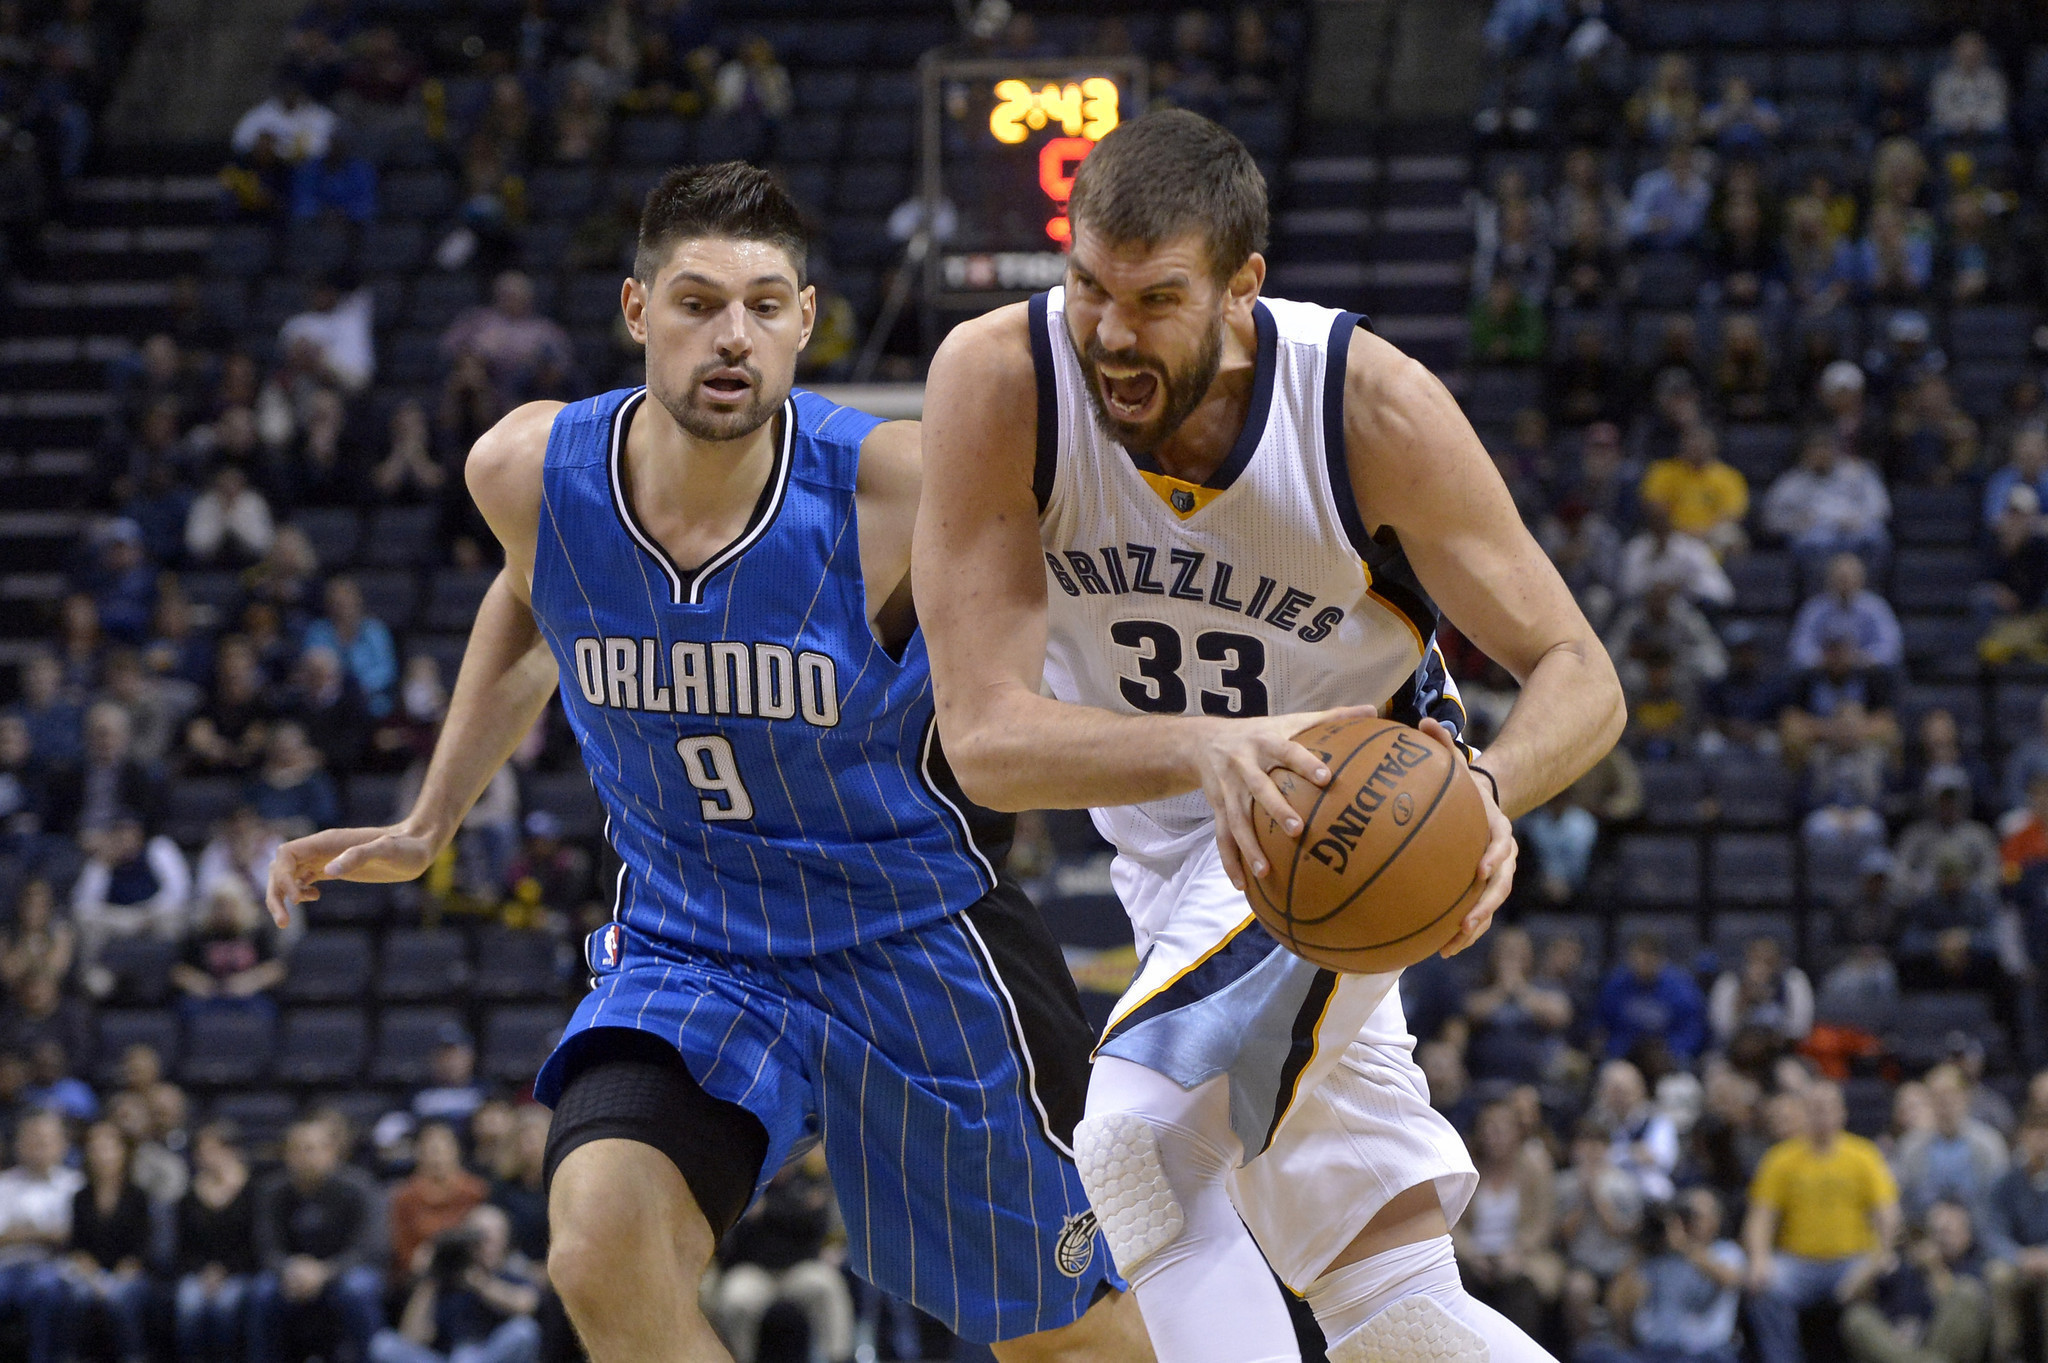 Os-sp-orlando-magic-nikola-vucevic-defense-1206-20161205